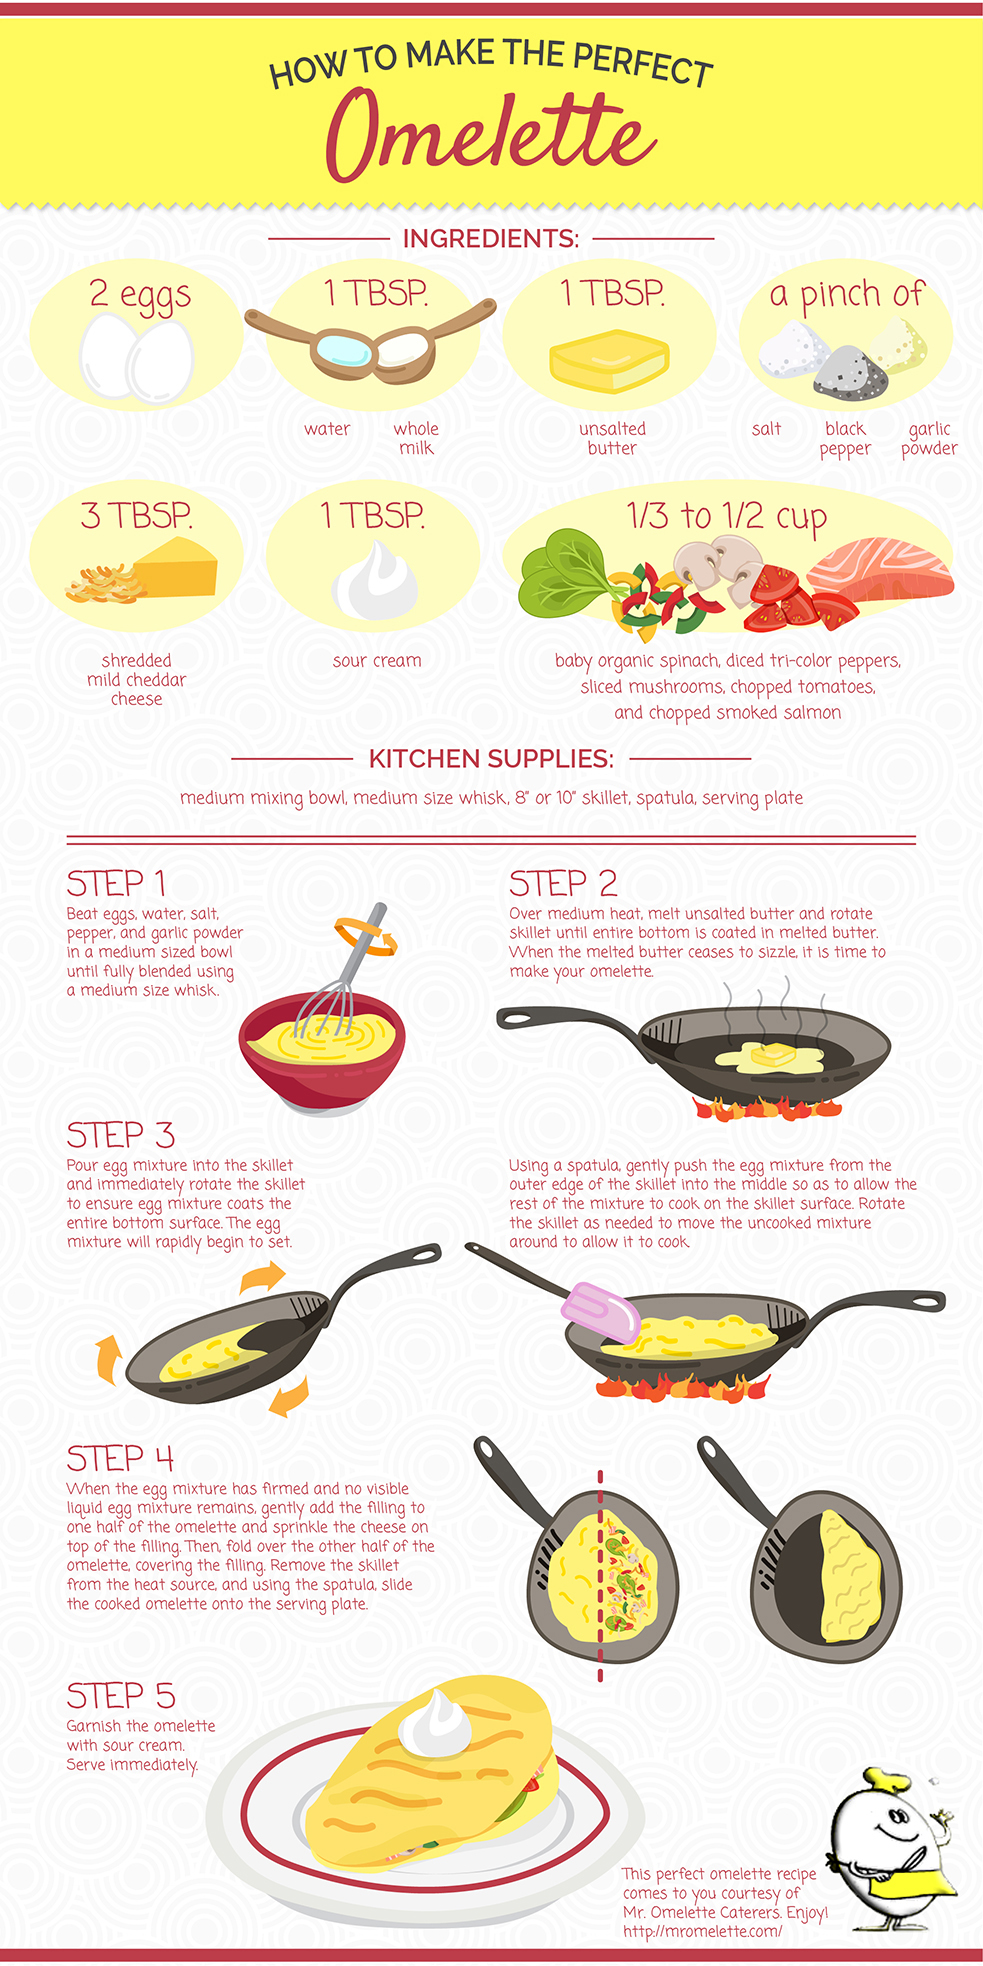 How To Make The Perfect Omelette